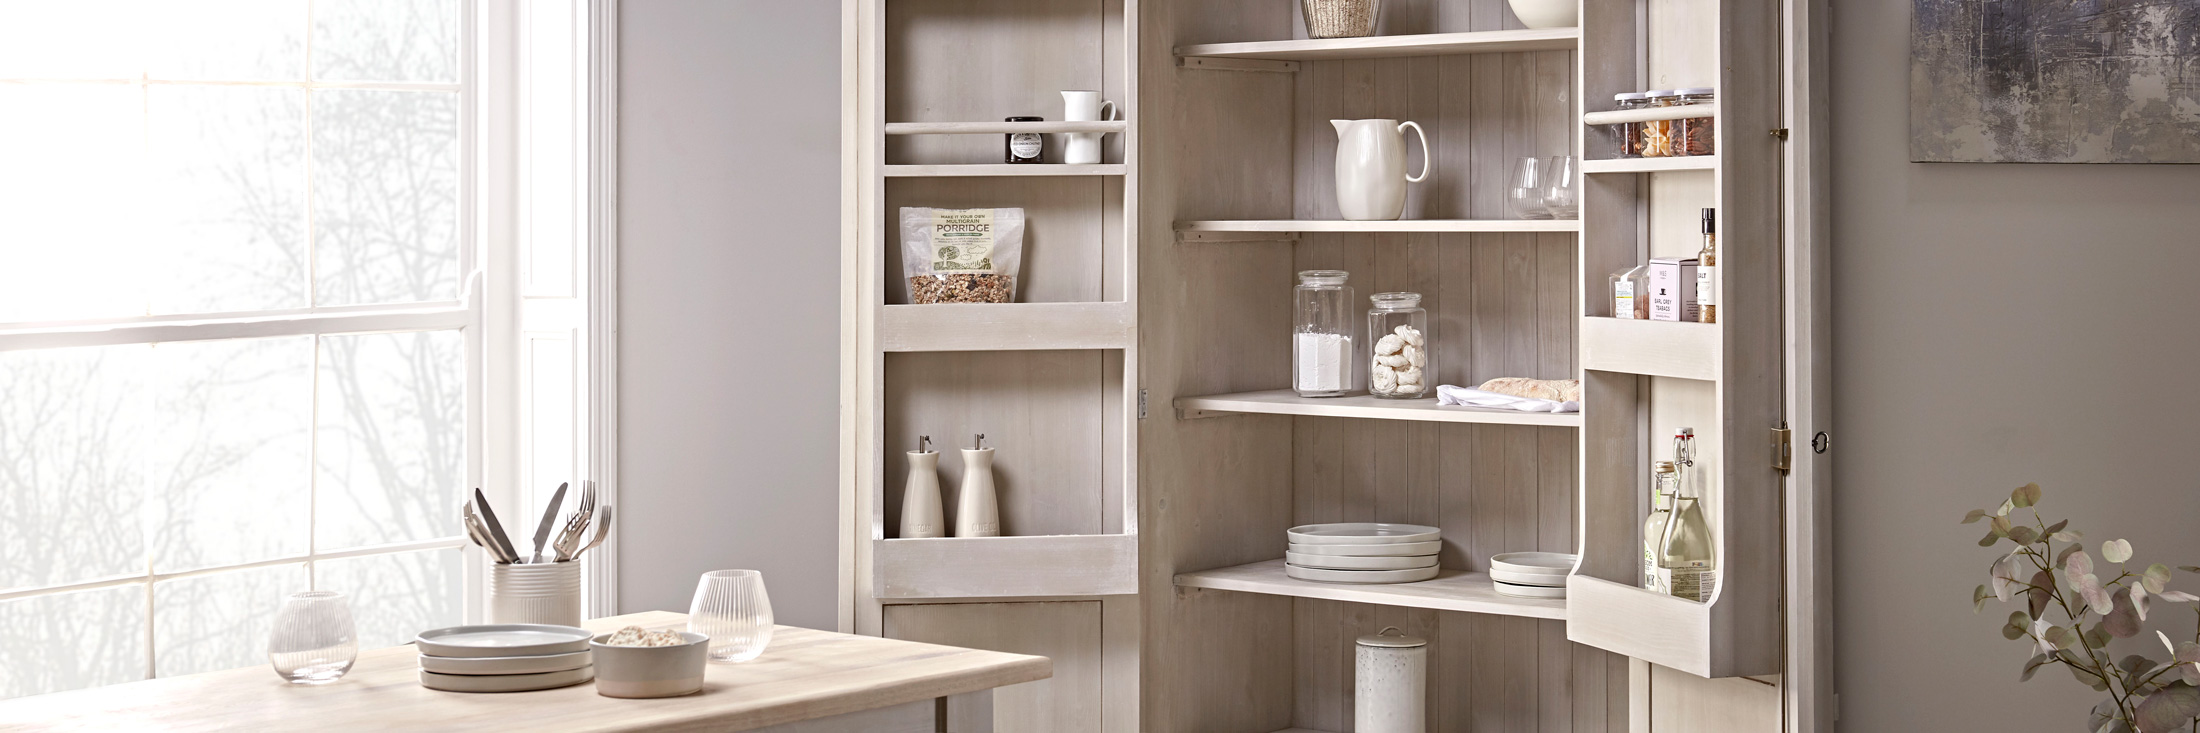 coxandcox.co.uk - Storage Solutions starting at just £12.50